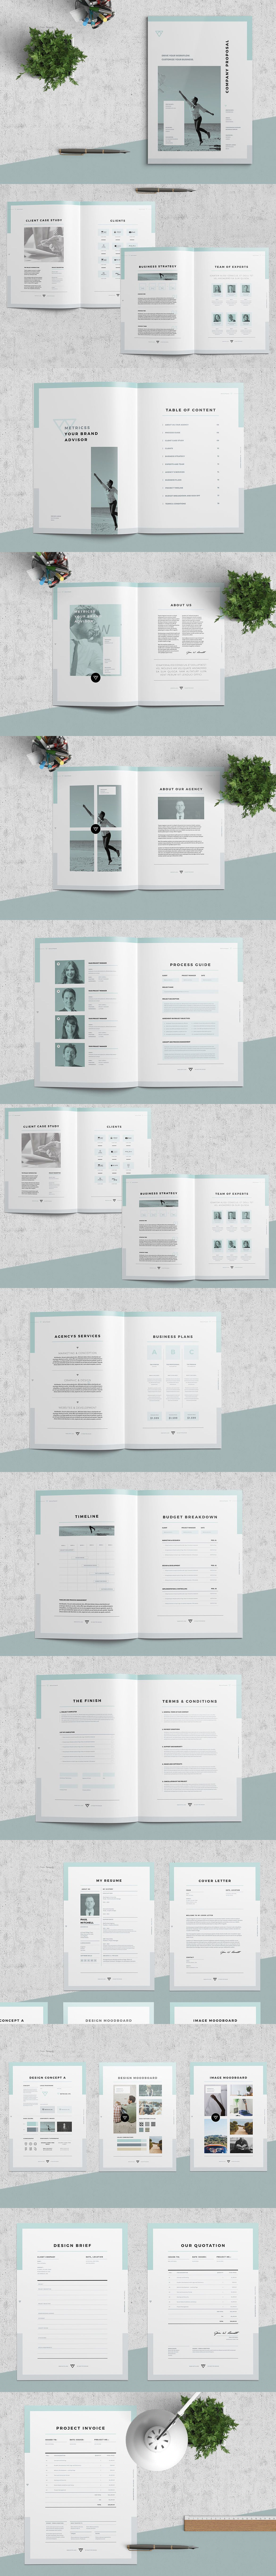 Clean And Professional Proposal Template InDesign INDD   Proposal (20  Pages), Resume,